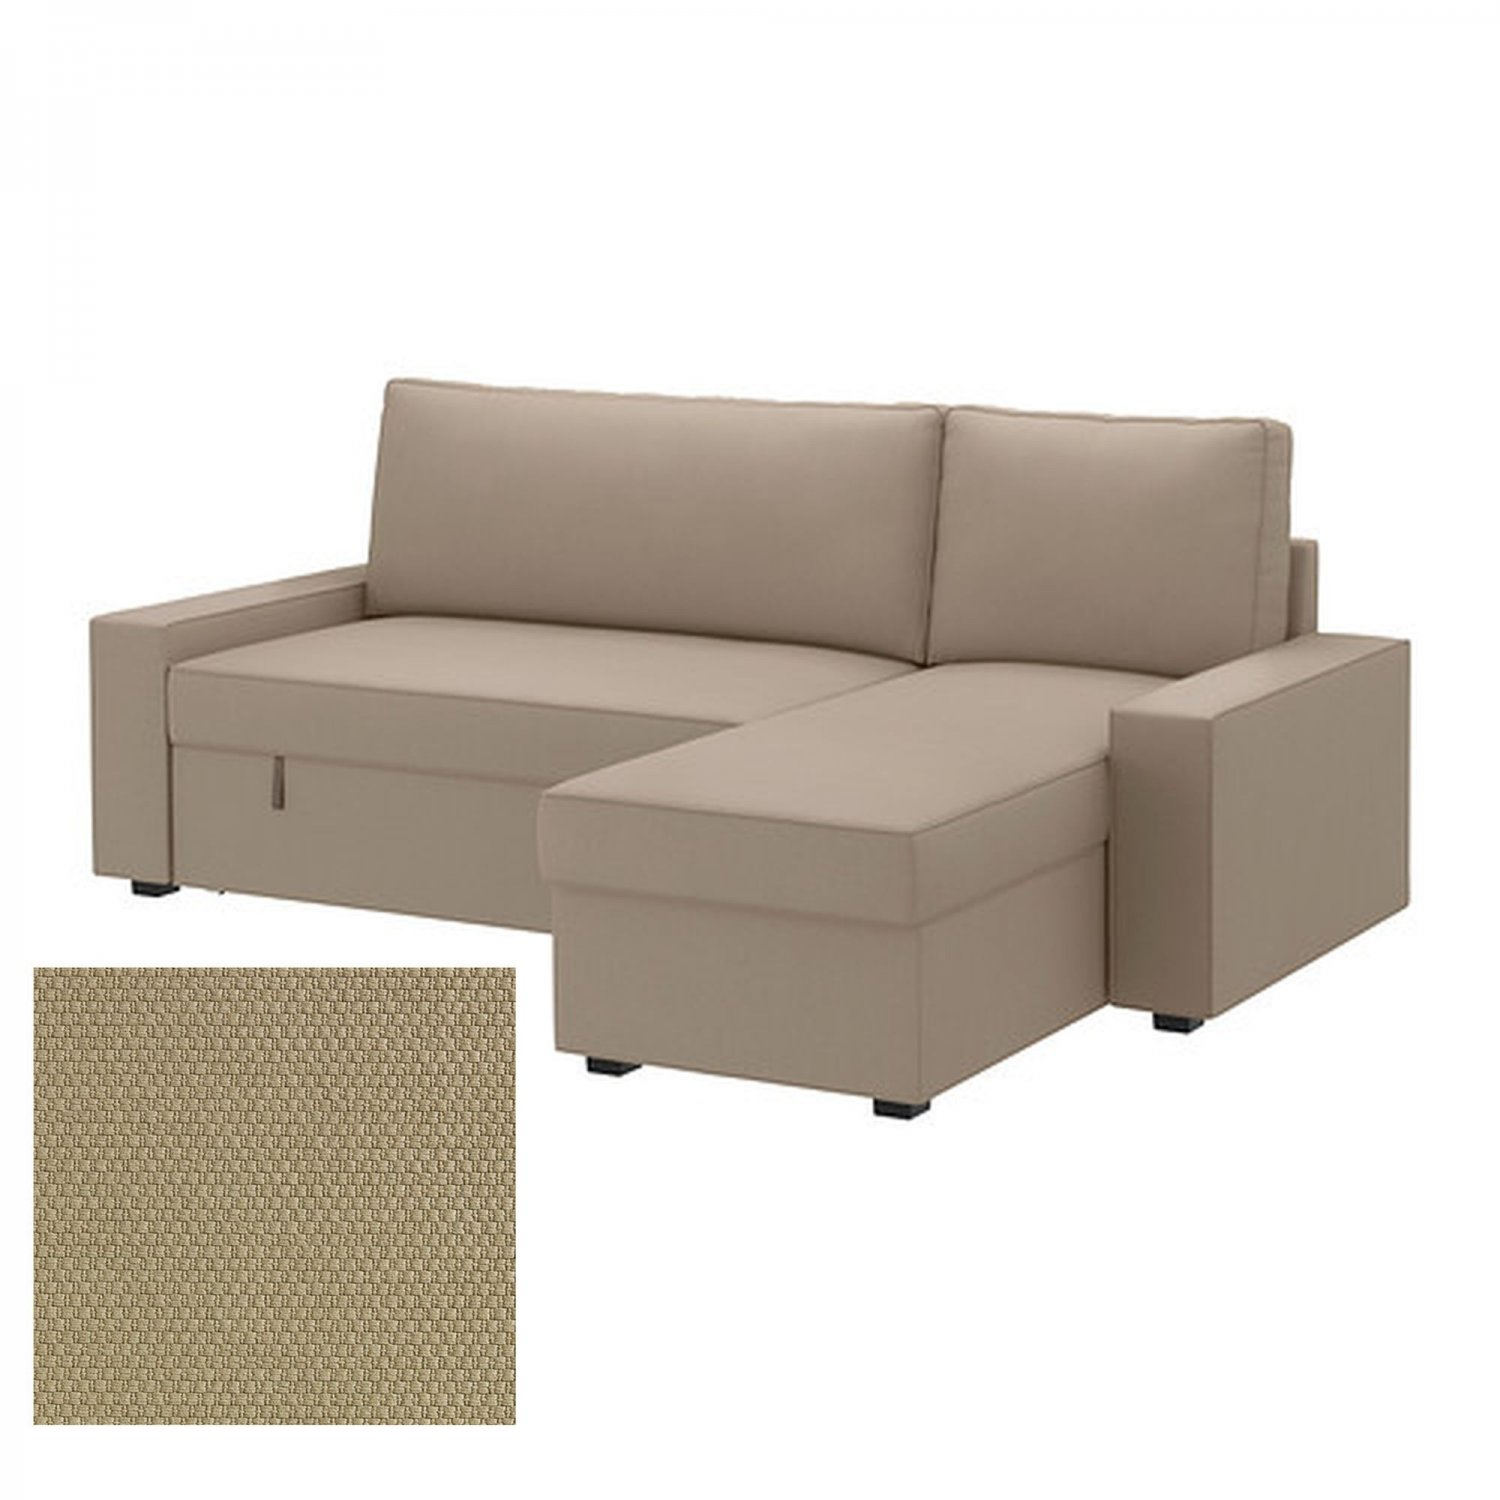 sofa beds on sale free shipping feather foam cushions india ikea vilasund bed with chaise slipcover sofabed cover